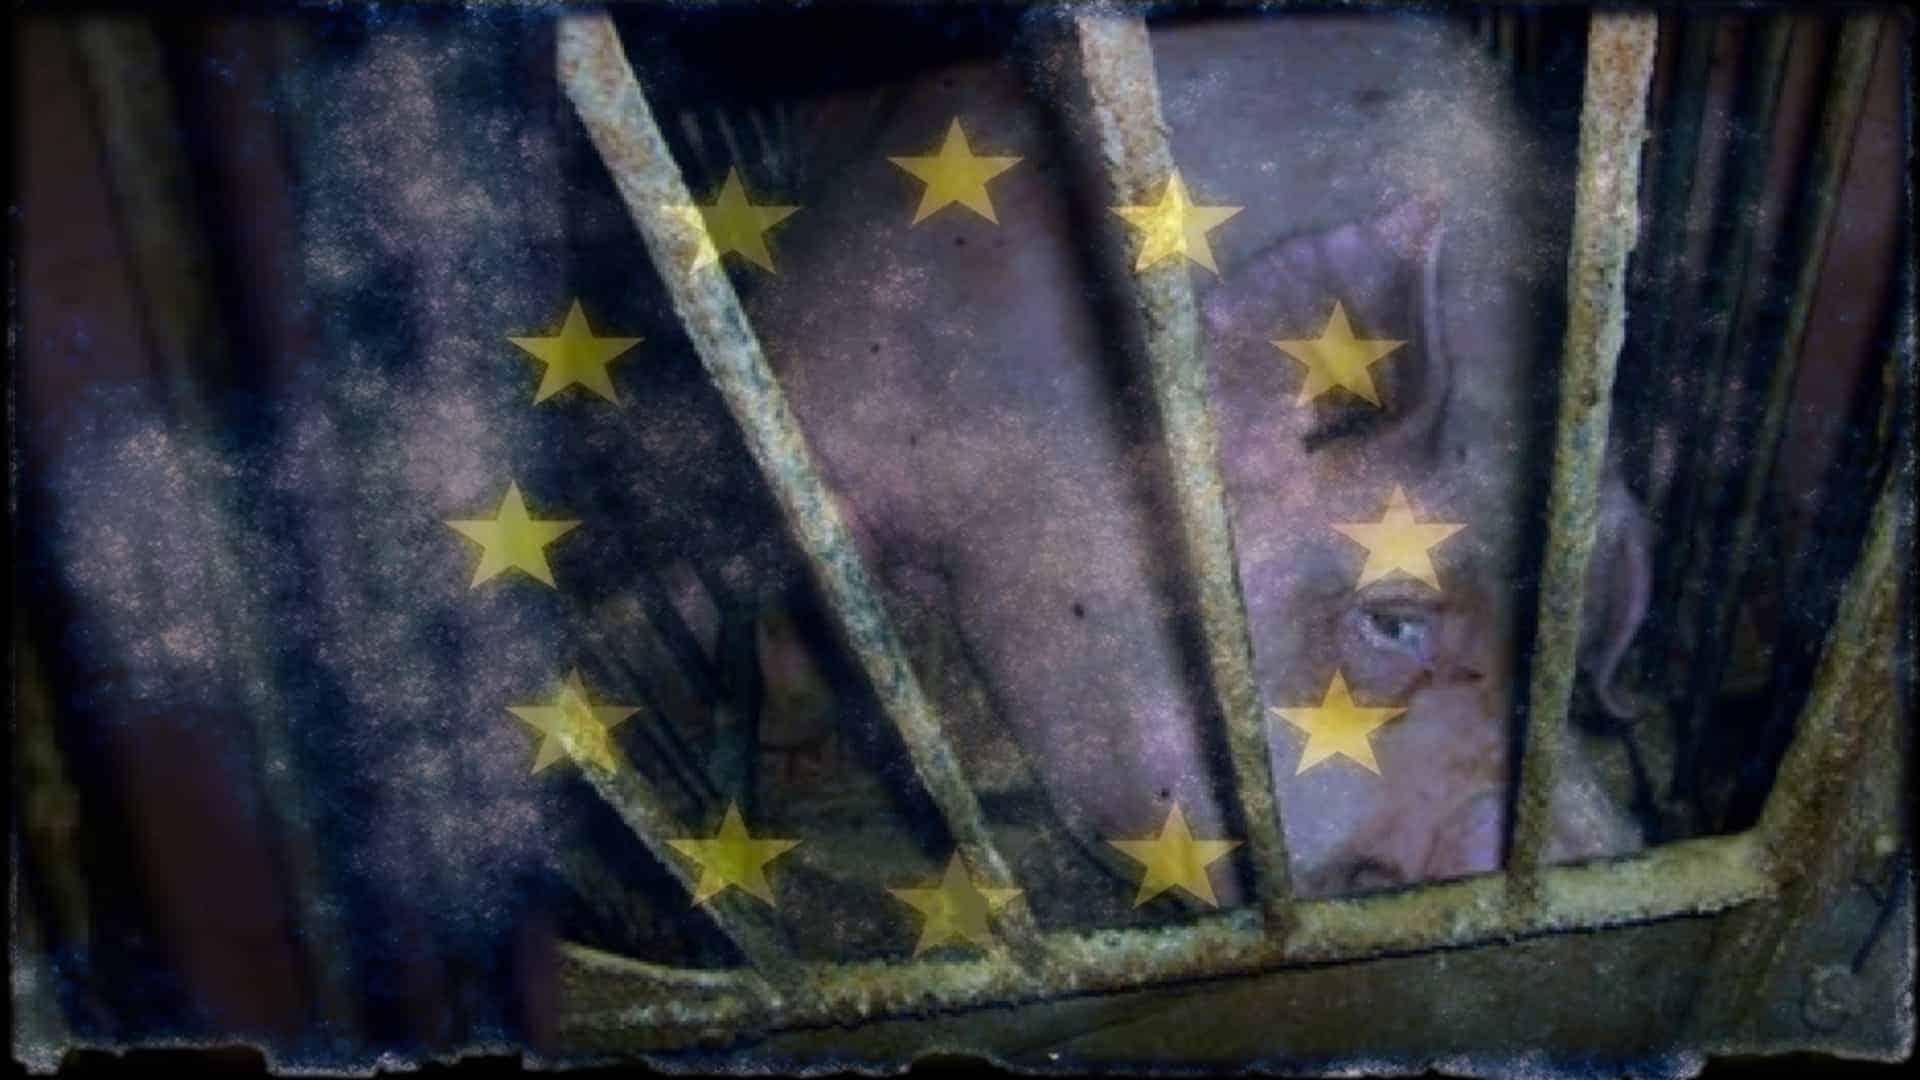 A pig looks forlornly towards the camera. It is on its side, held in a tiny metal cage. Overlaying the image is the flag of the European Union.